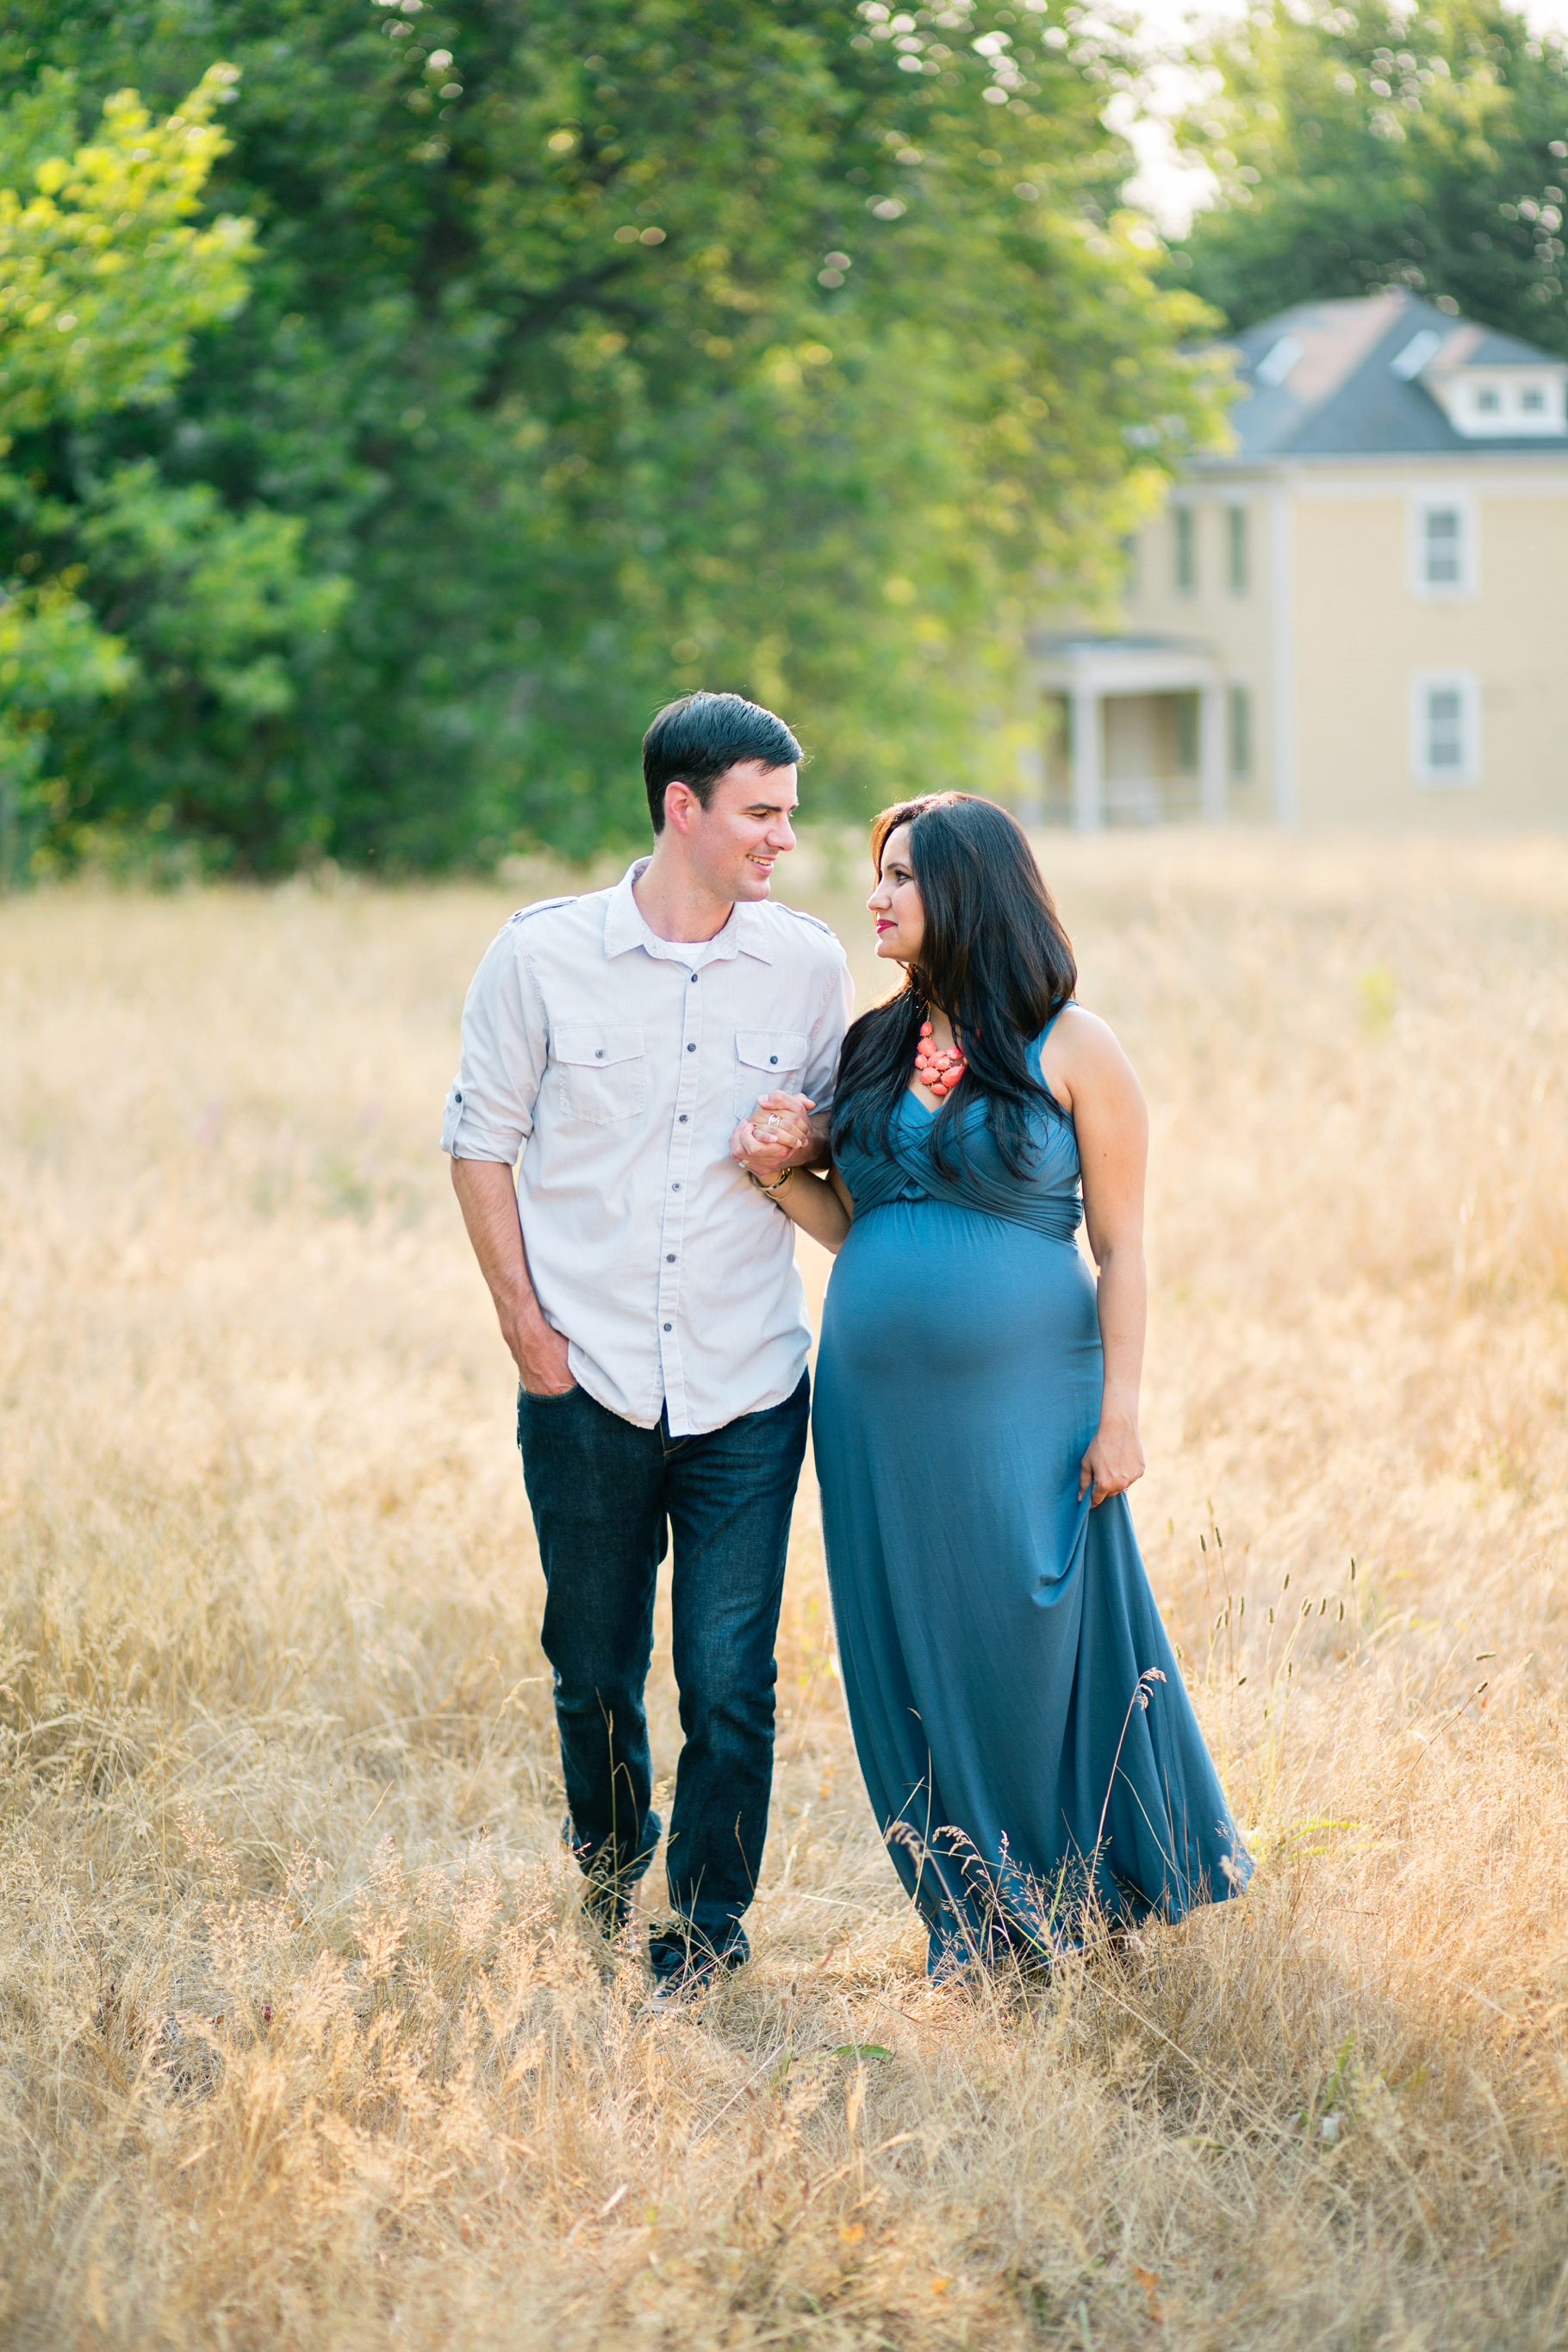 Maternity-Portraits-Photography-Discovery-Park-Seattle-Photographer_0005